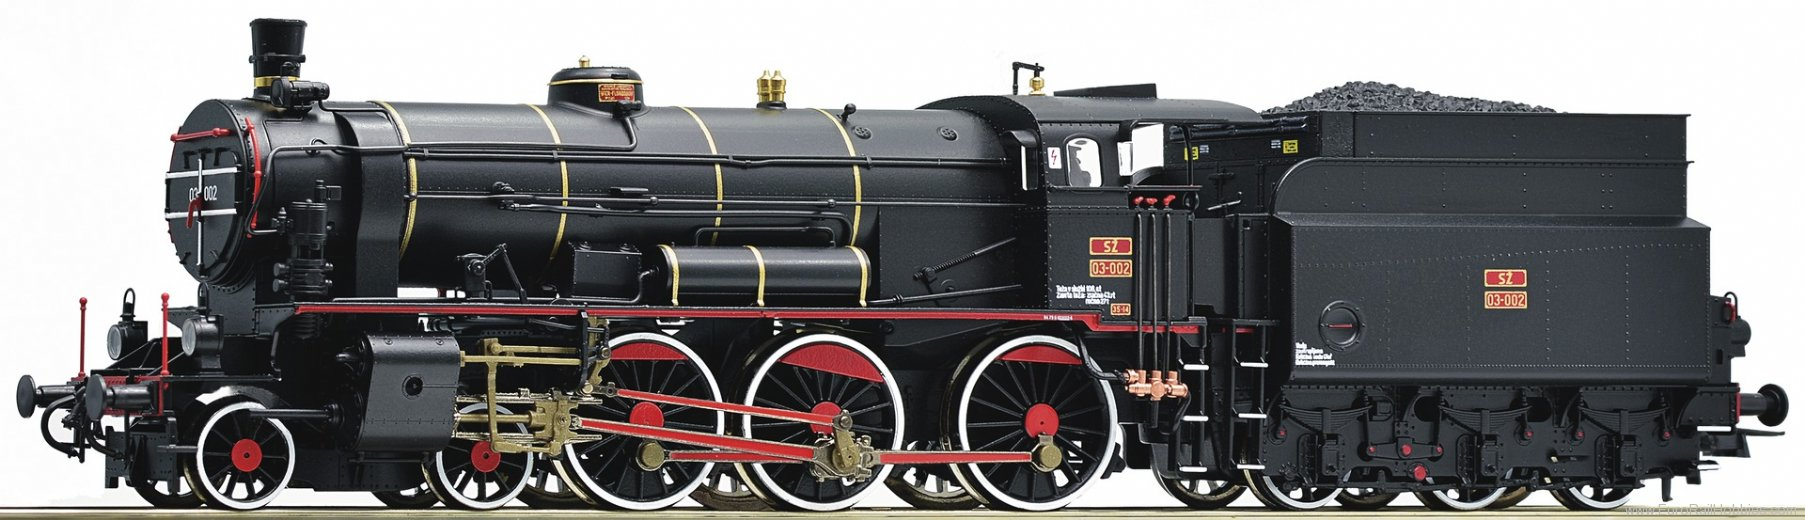 Roco 72119 Museum steam locomotive 03 002 of the SZ (Dig